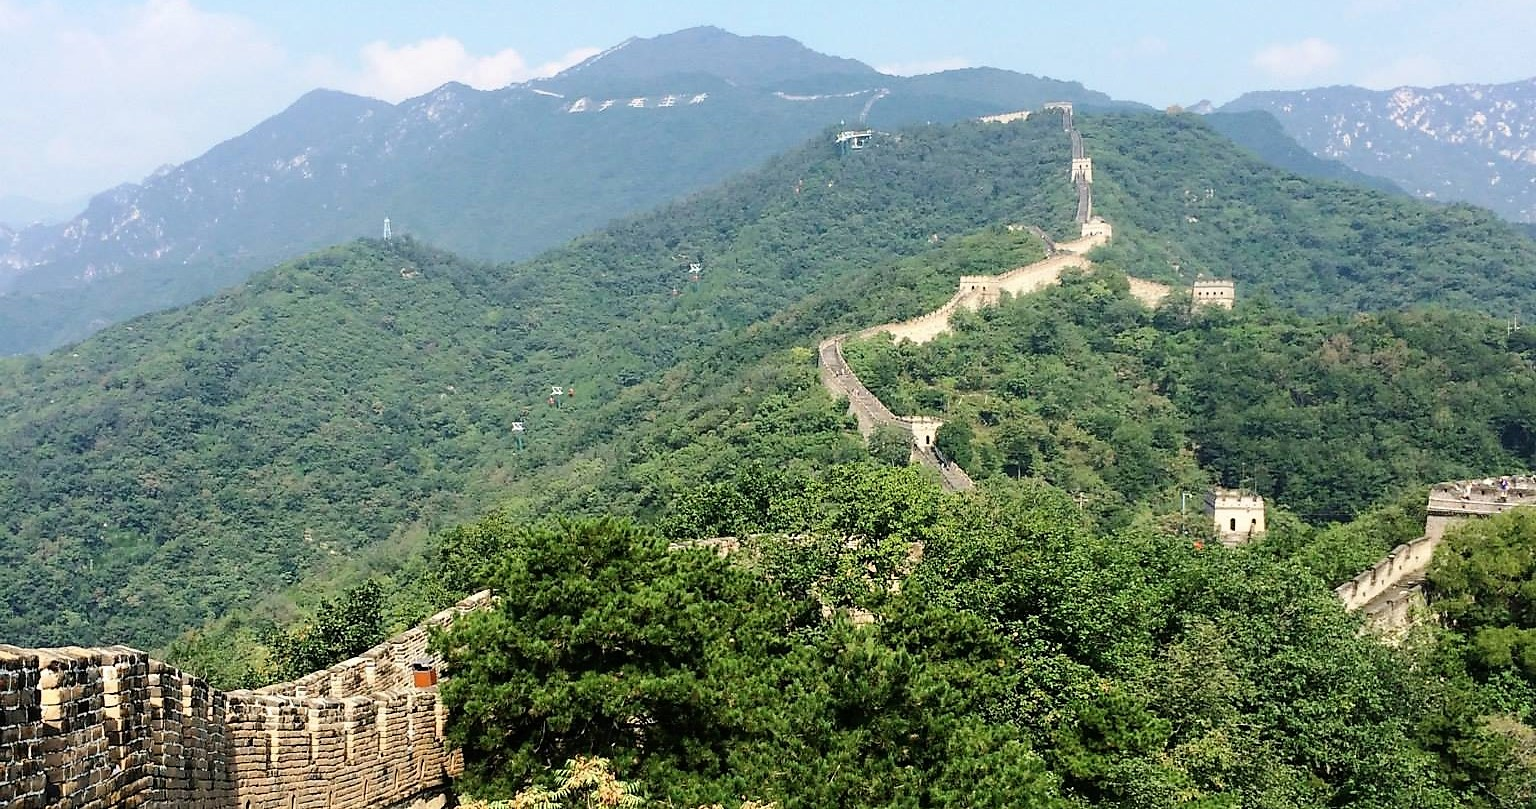 How to Visit the Great Wall of China